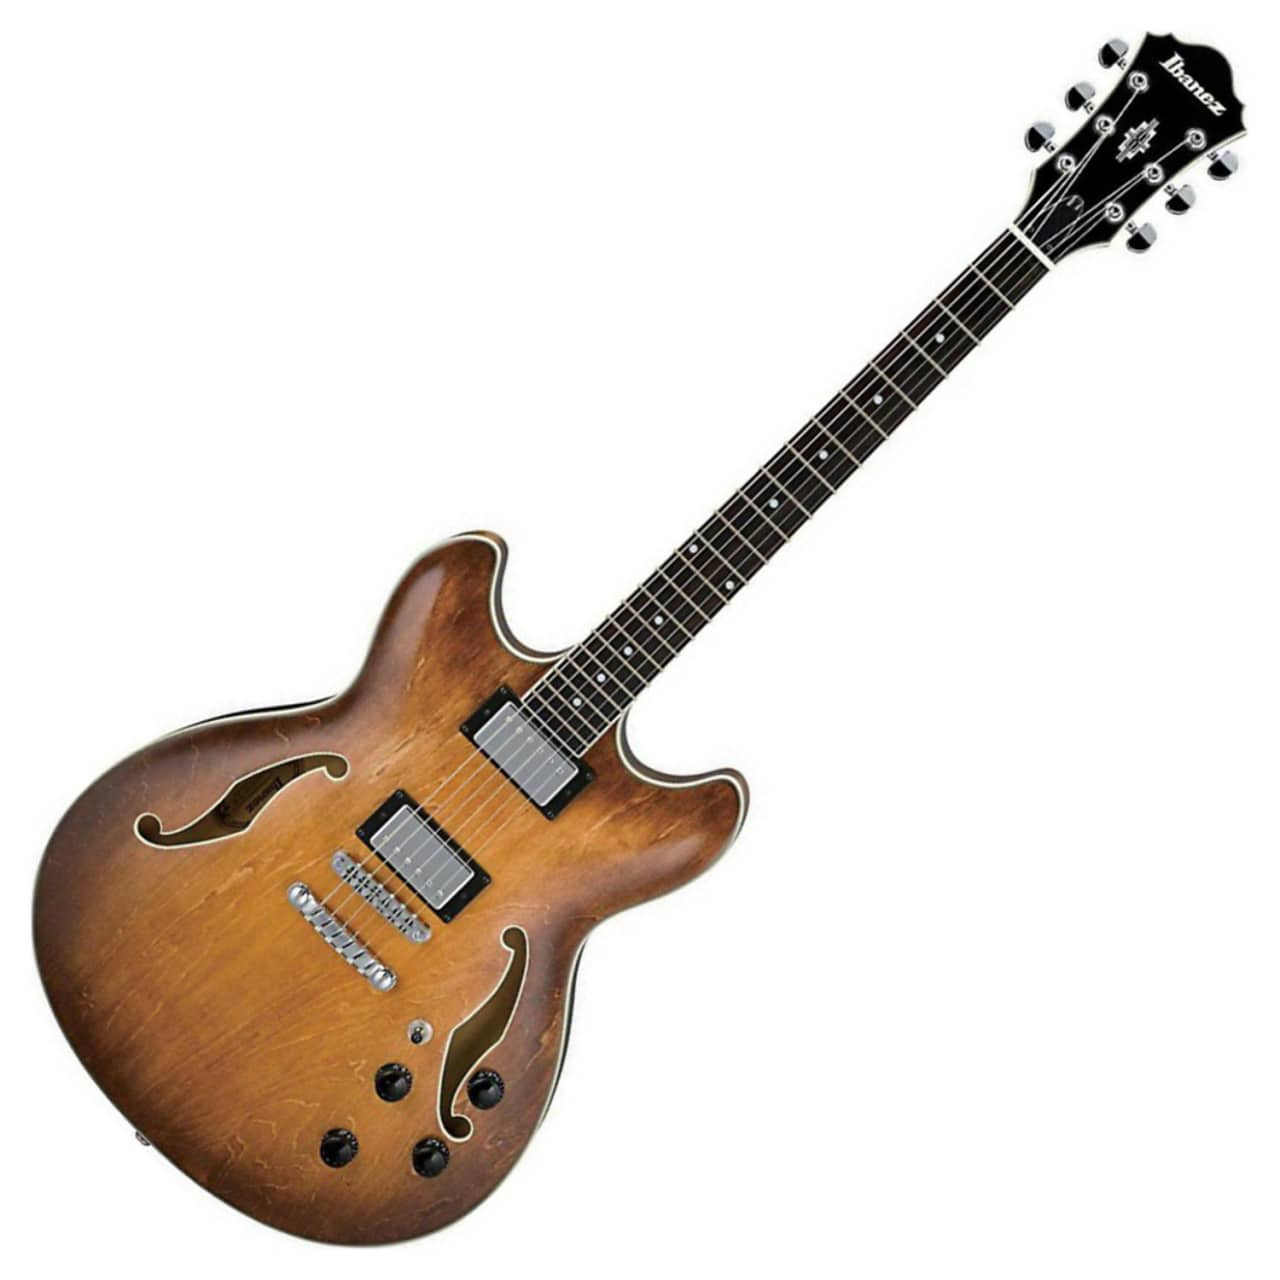 ibanez artcore as73 semi hollow body electric guitar tobacco reverb. Black Bedroom Furniture Sets. Home Design Ideas